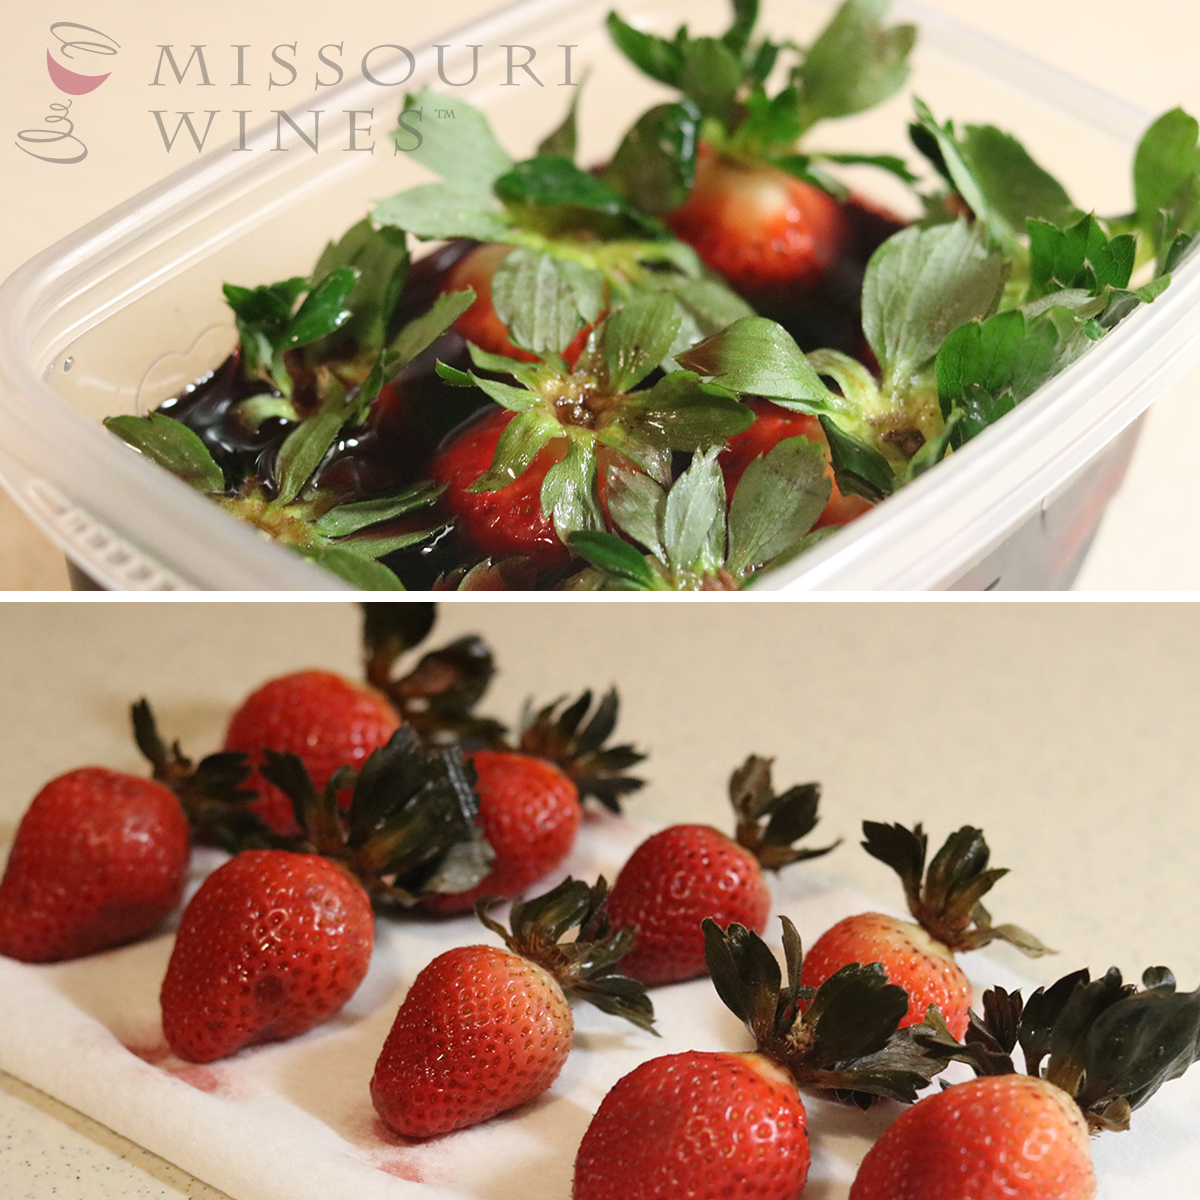 Missouri wine infused chocolate covered strawberries, soak and dry